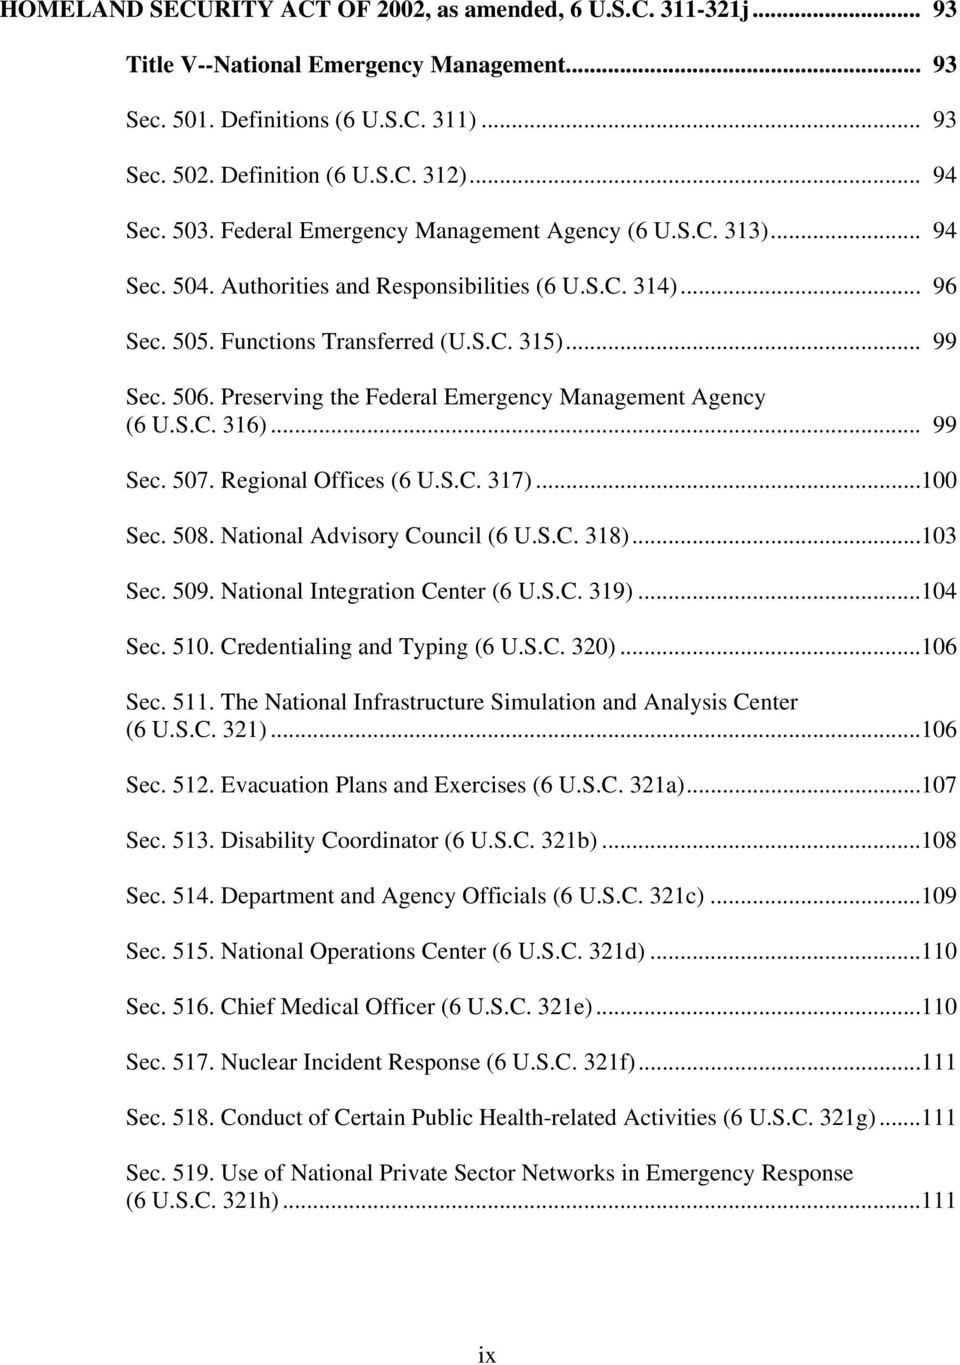 Preserving the Federal Emergency Management Agency (6 U.S.C. 316)... 99 Sec. 507. Regional Offices (6 U.S.C. 317)...100 Sec. 508. National Advisory Council (6 U.S.C. 318)...103 Sec. 509.